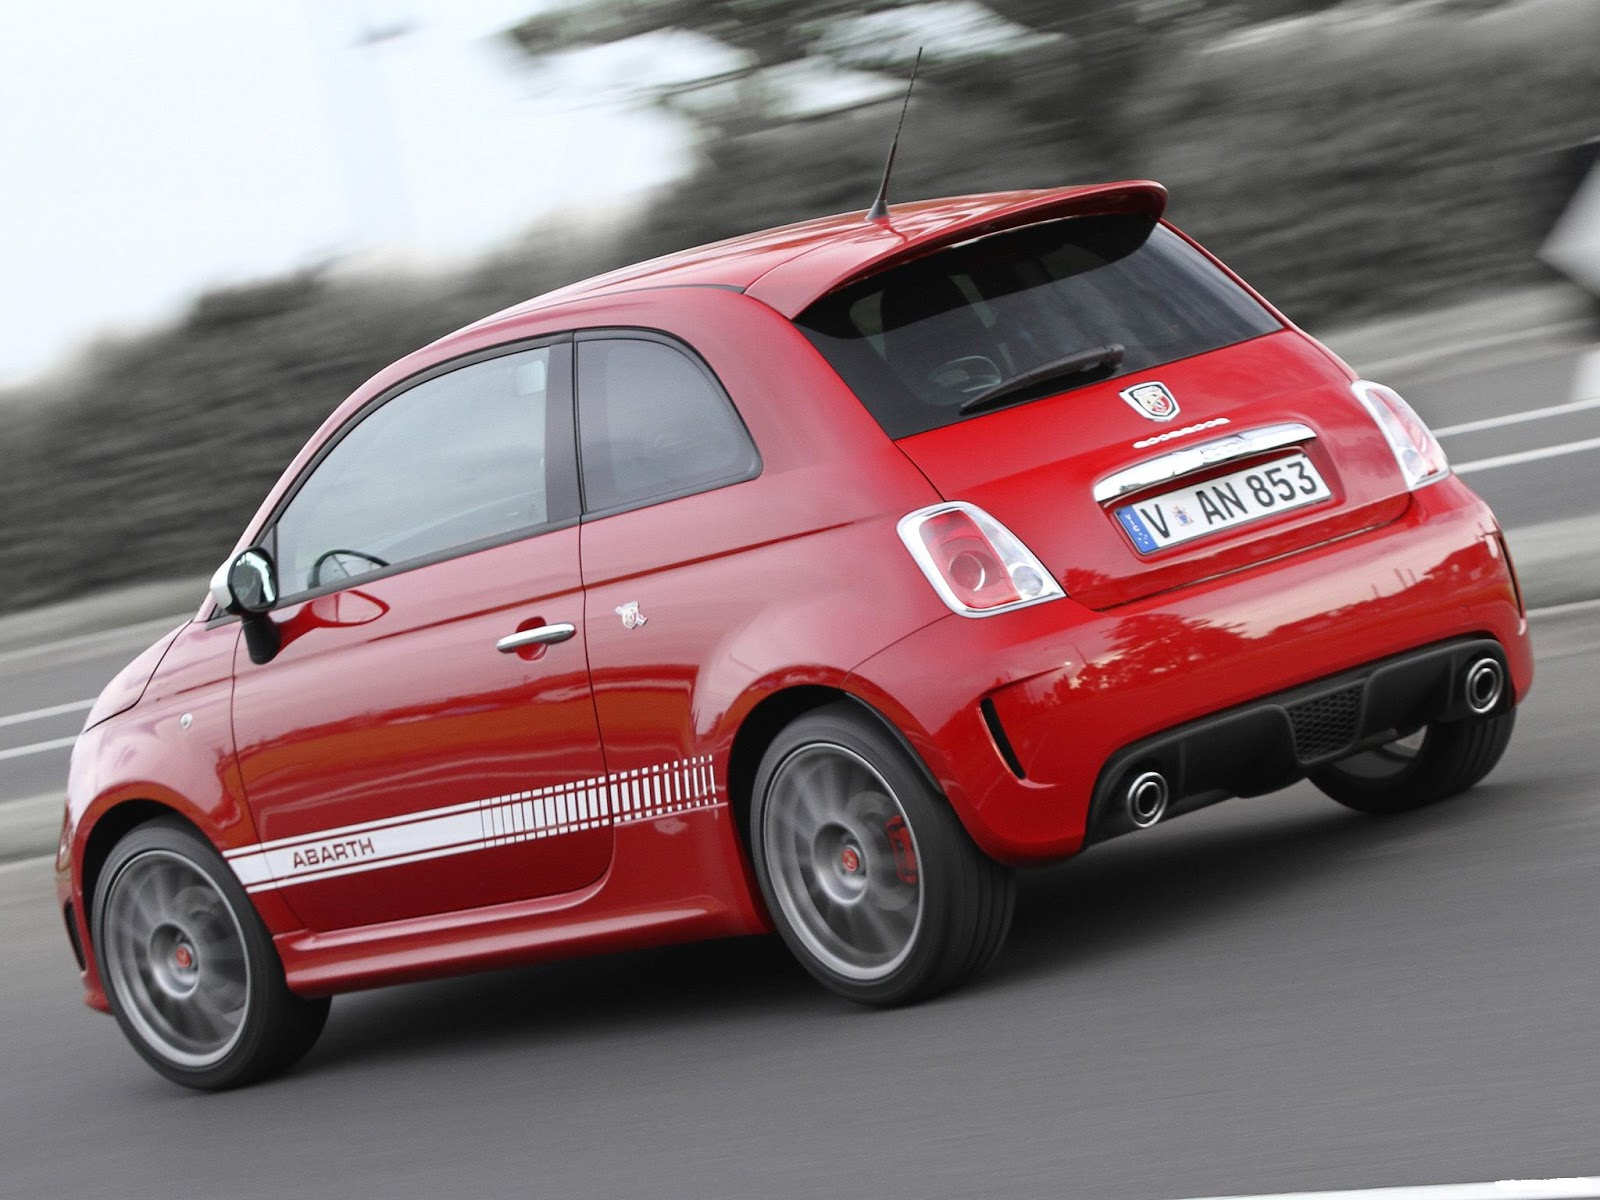 HD Wallpapers Desktop: Abarth Sports Car HD Wallpapers